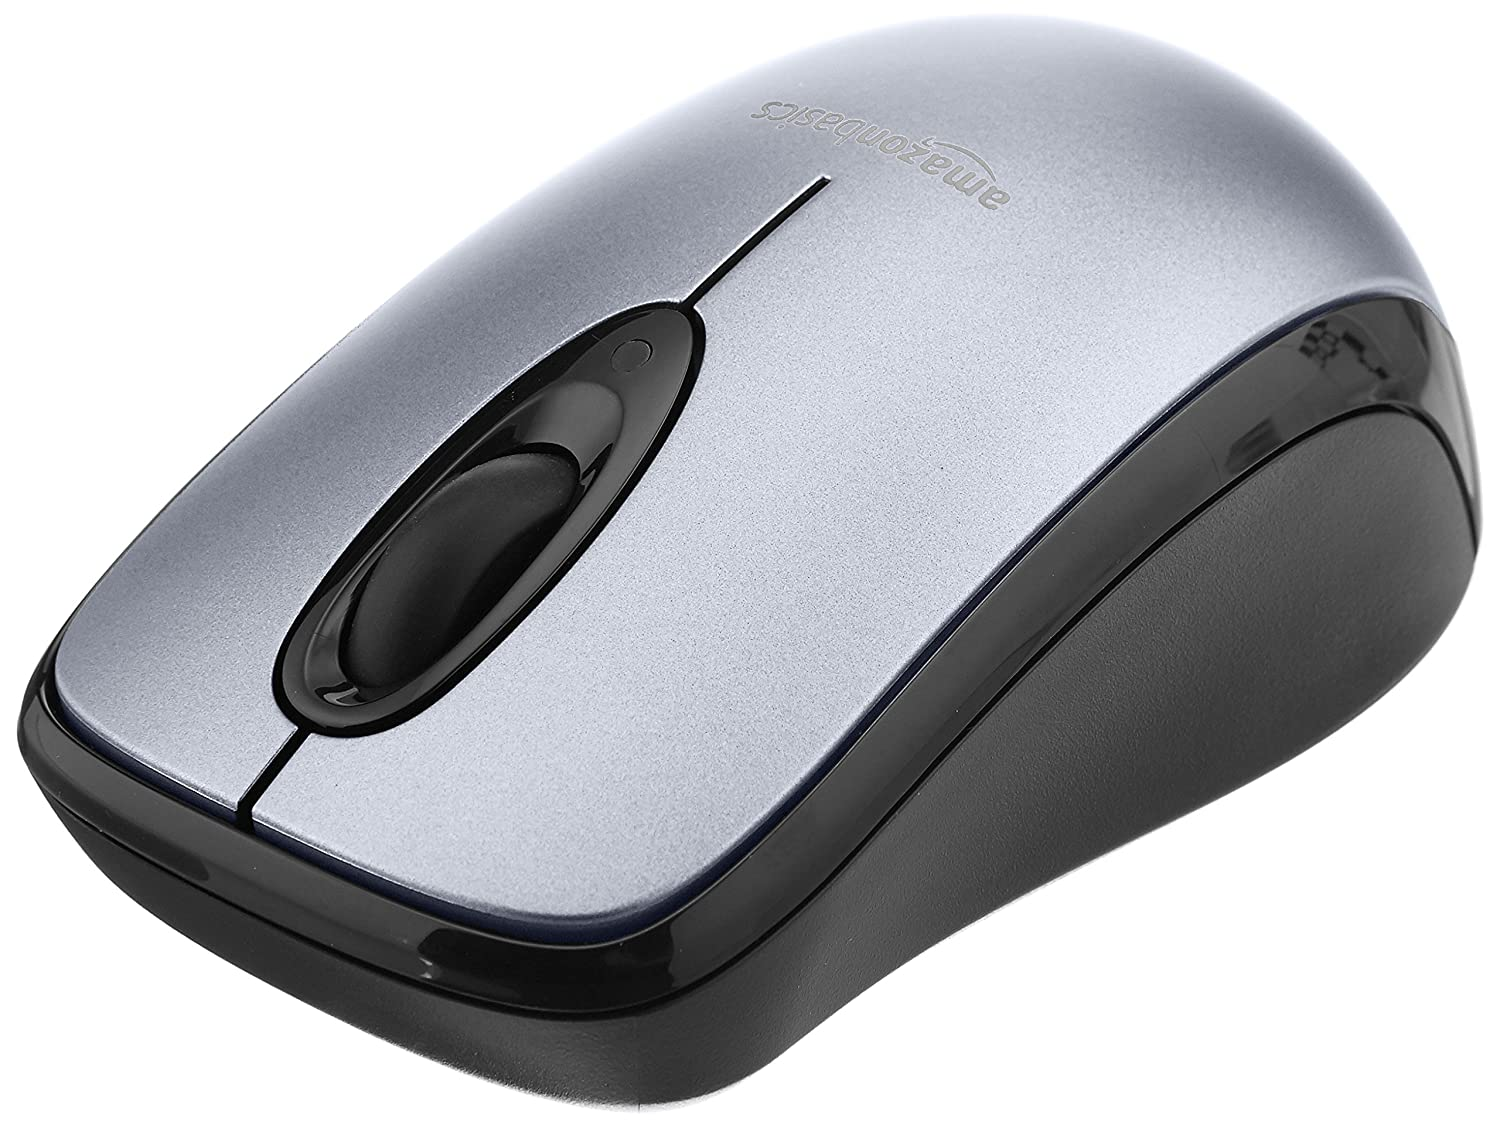 a08923792d0 Amazon.com: AmazonBasics Wireless Computer Mouse with Nano Receiver - Silver:  Computers & Accessories